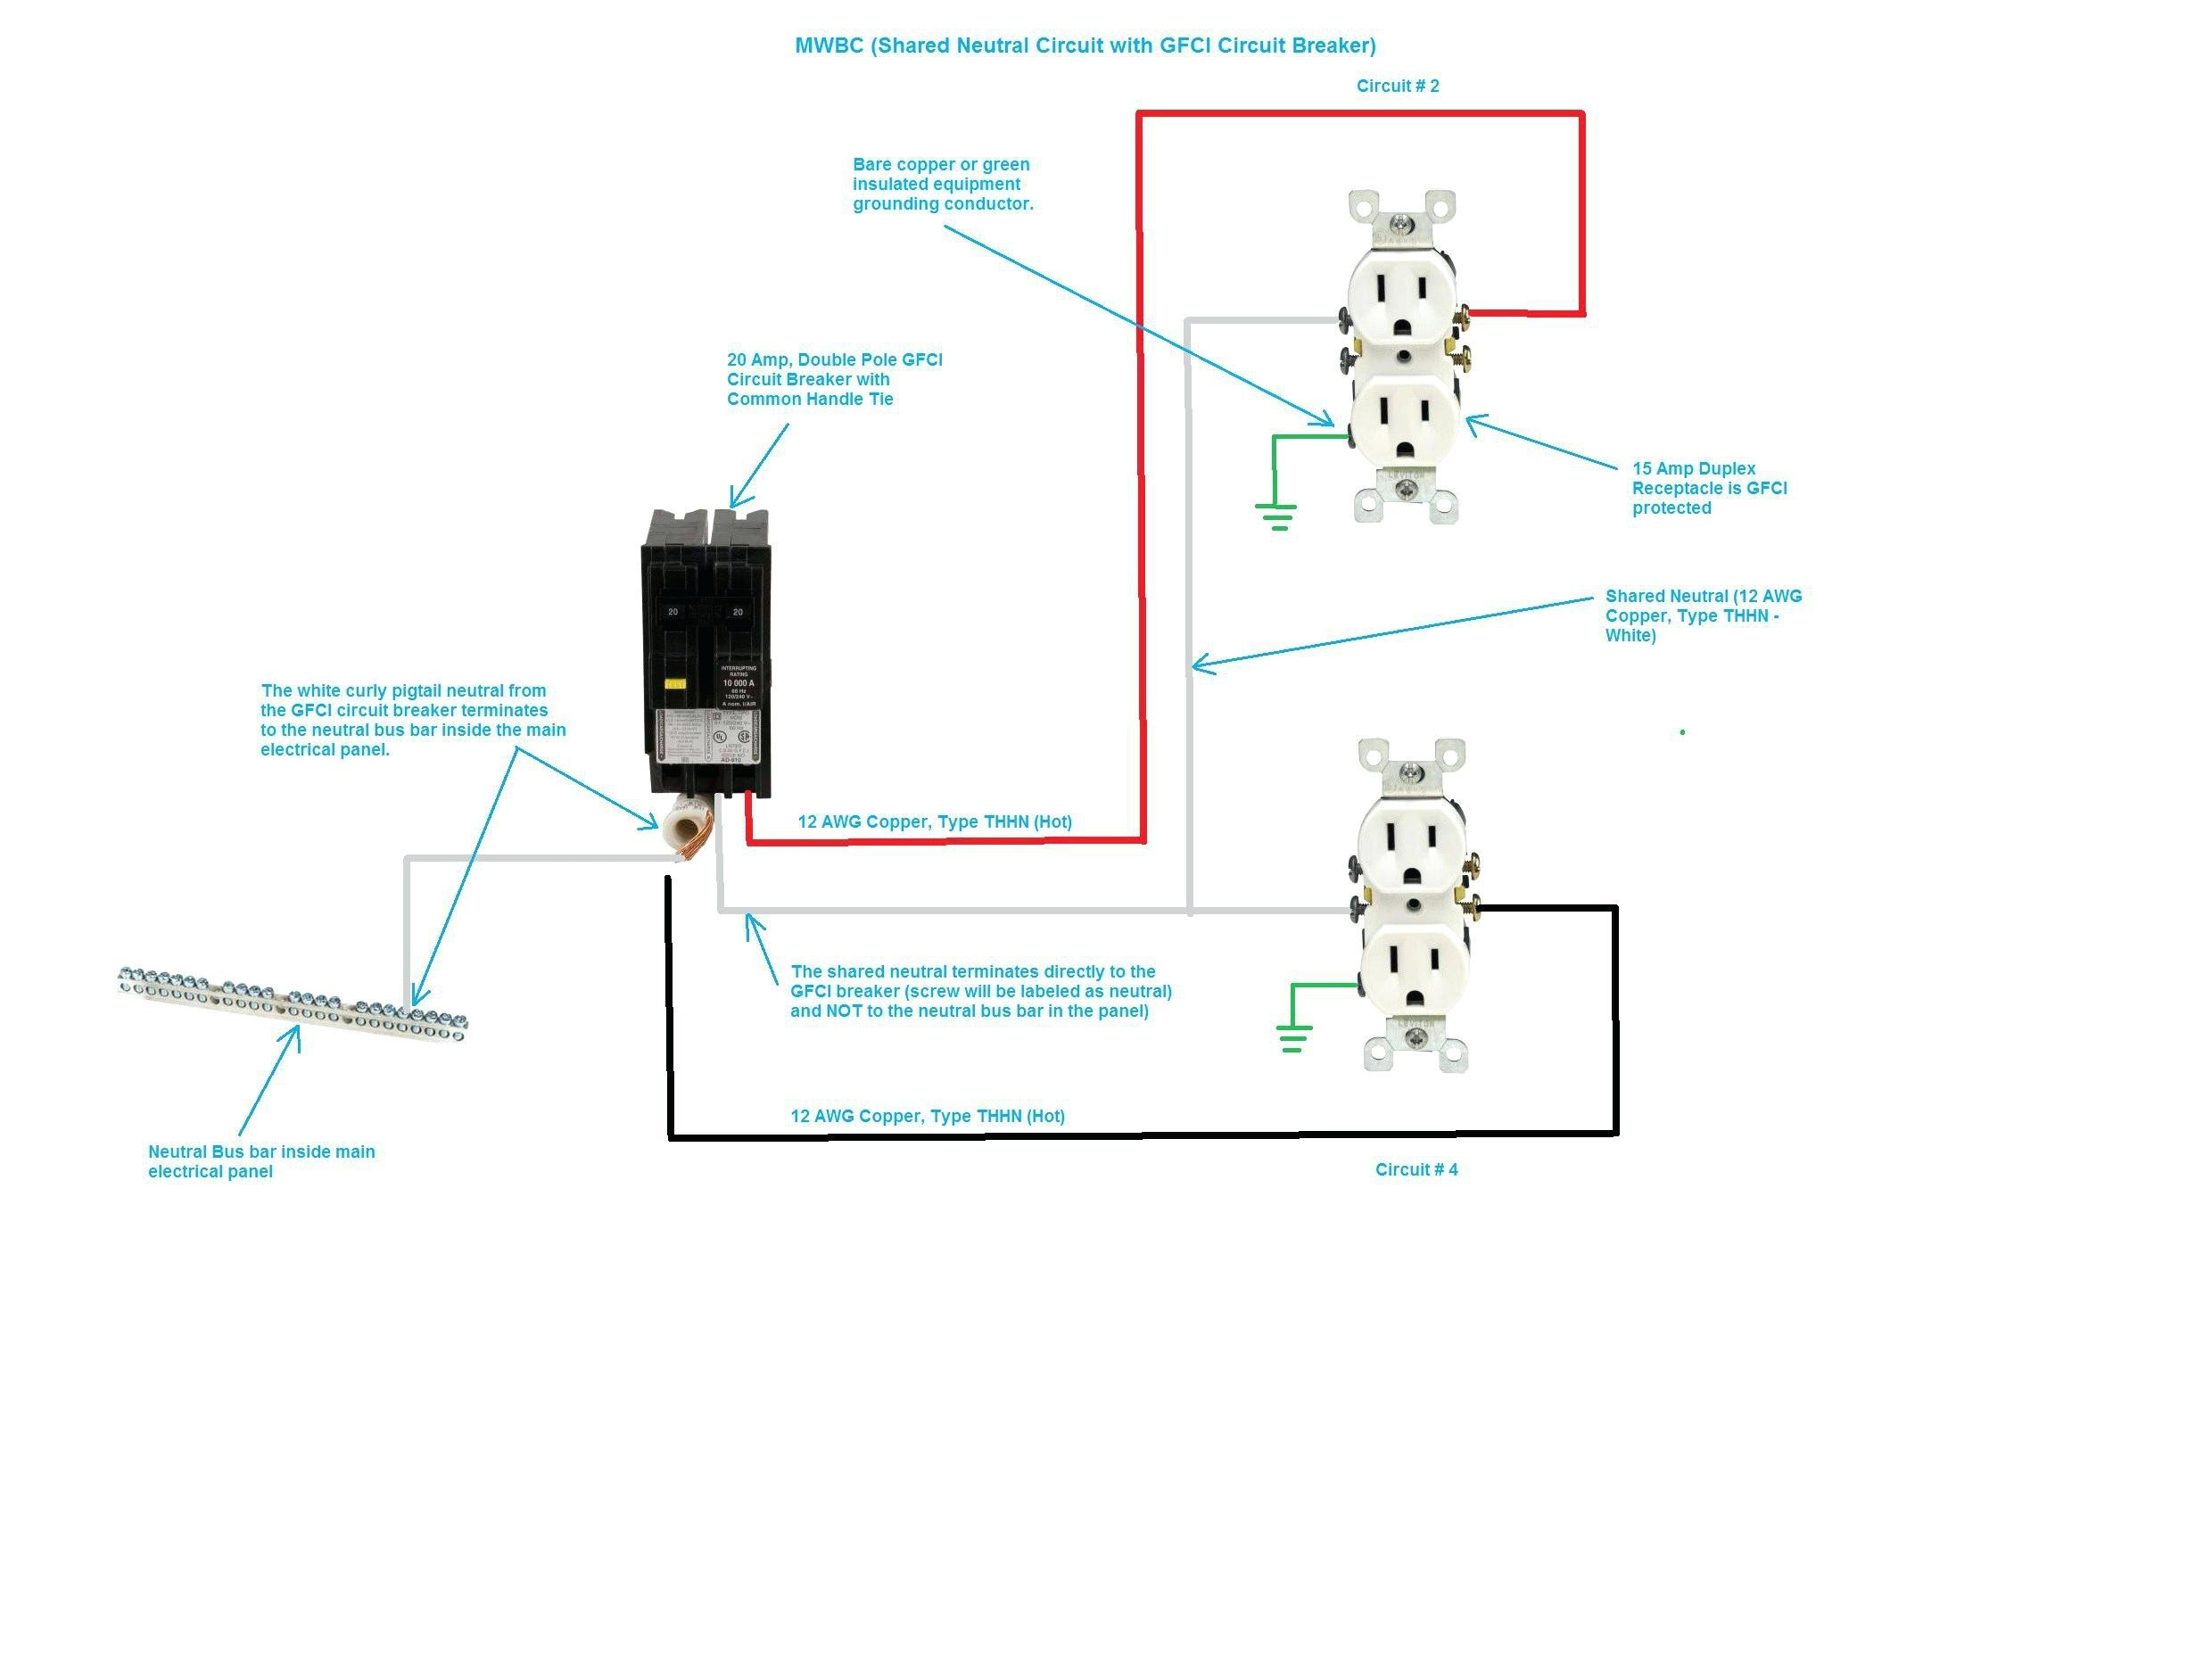 2 pole gfci breaker wiring diagram Download-Wiring Diagram Gfci Breaker New Double Pole Mcb Wiring Diagram Fresh Amazing Double Pole Breaker 19-o